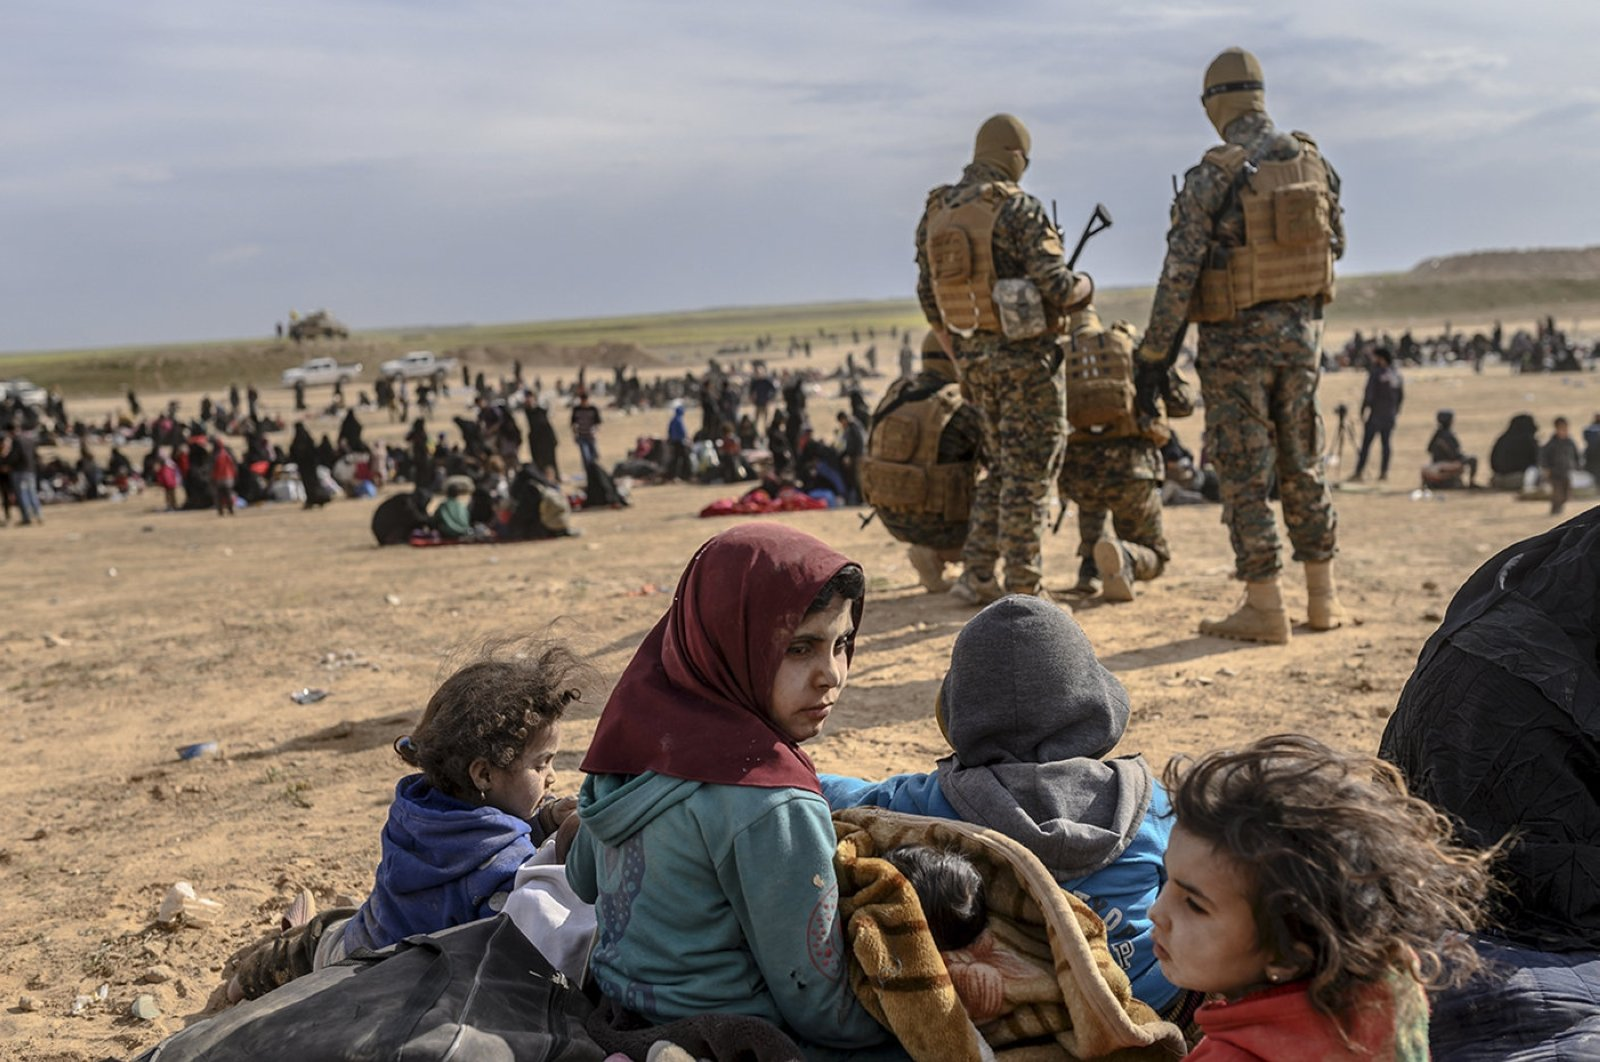 Civilians evacuated from the Daesh group's embattled holdout of Baghouz wait at a screening area held by U.S.-backed YPG/PKK terrorists, in the northeastern Syrian province of Deir el-Zour, March 5, 2019. (AFP File Photo)